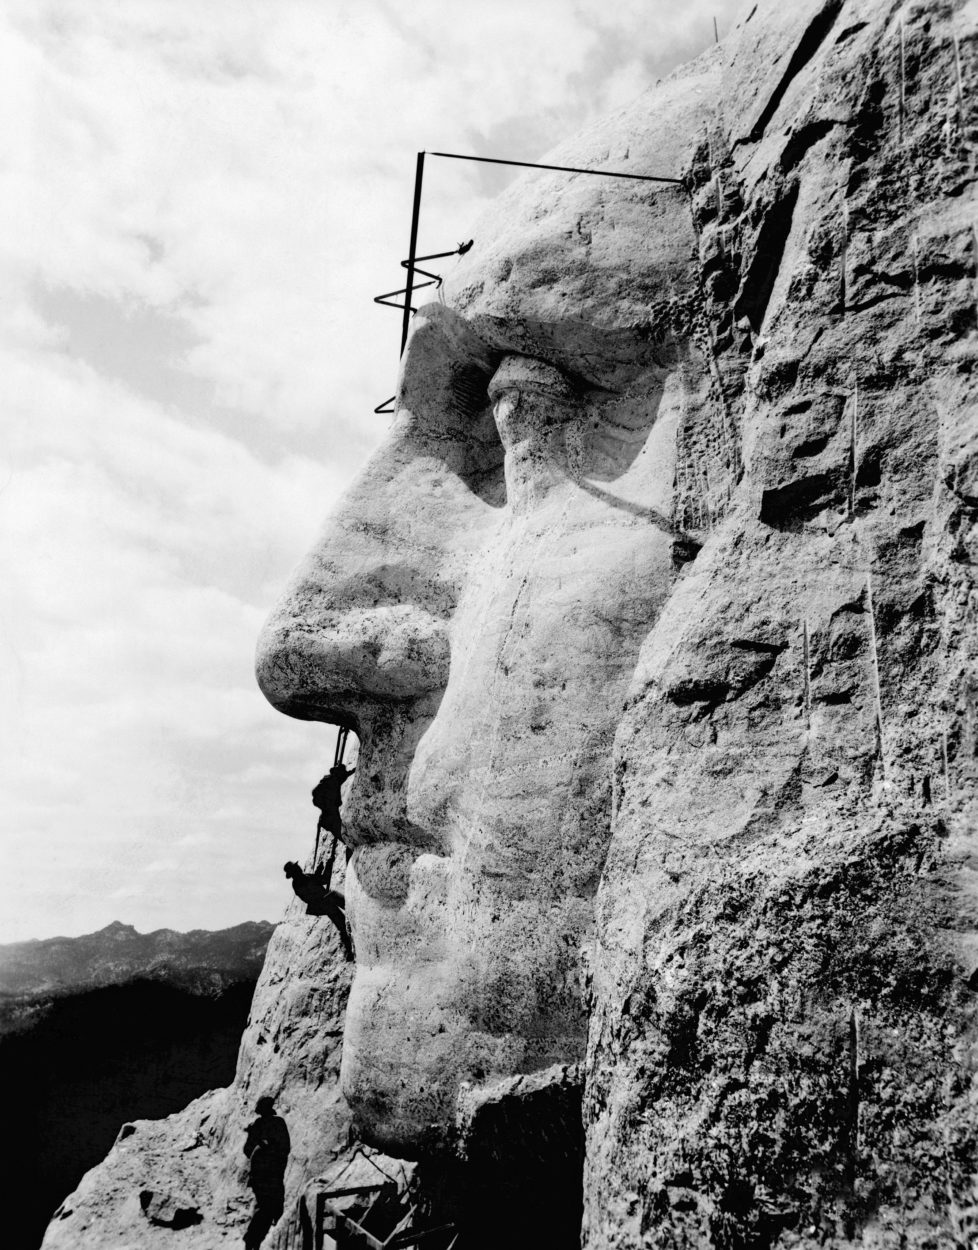 Workmen working on the face of George Washington, Rushmore, South Dakota, circa 1932. (Photo by Underwood Archives/Getty Images)